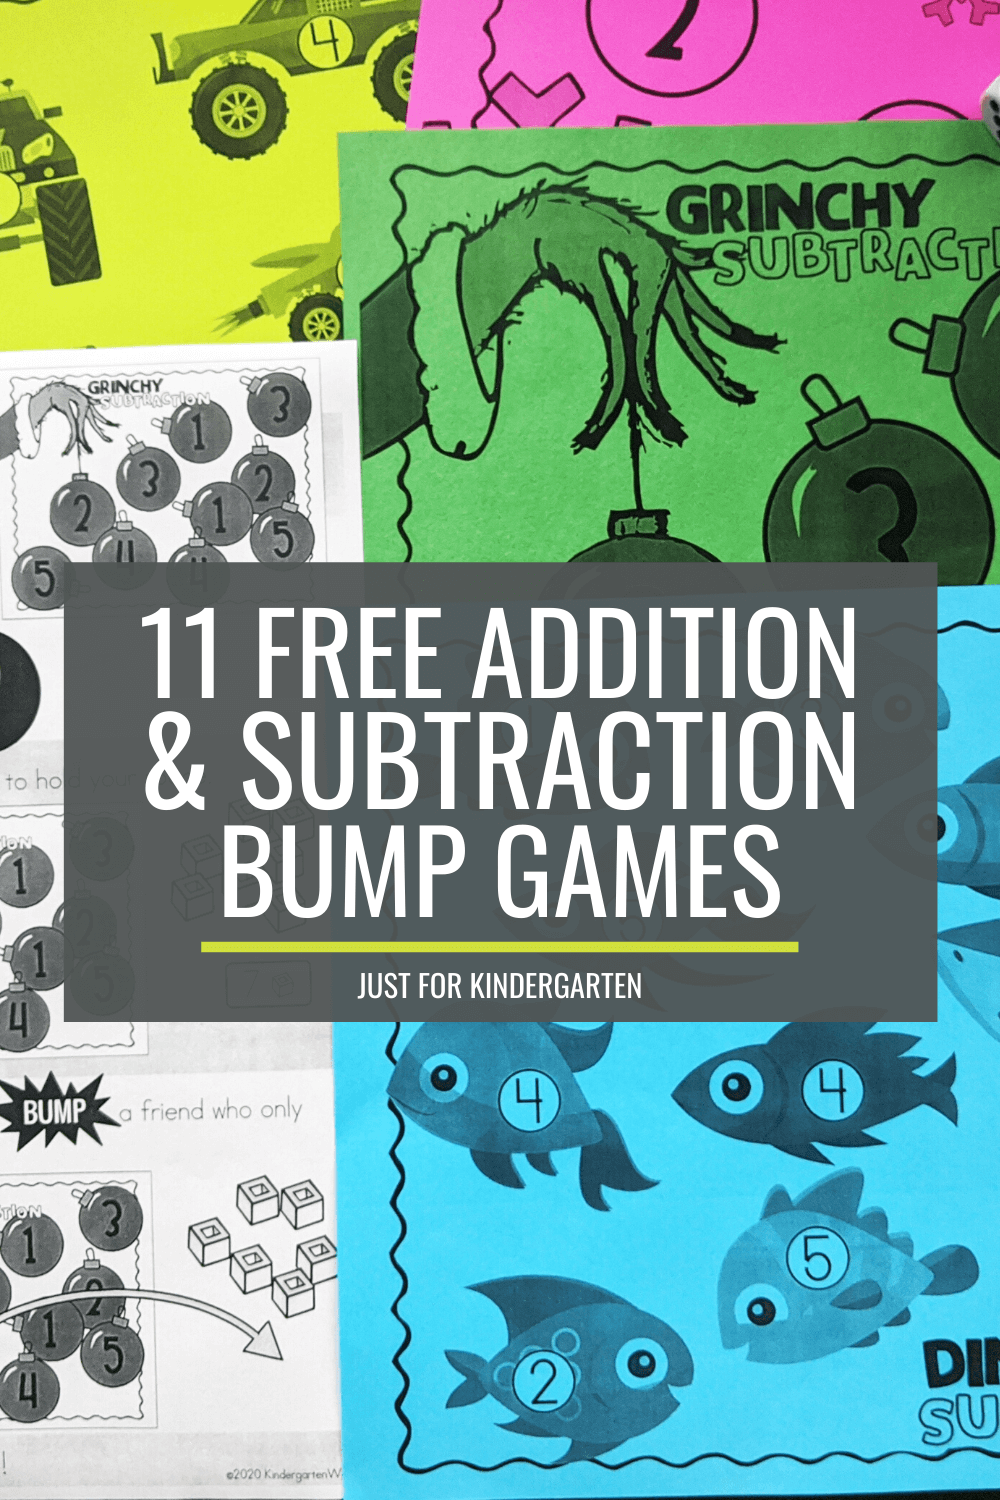 11 Free Addition and Subtraction Bump Games Just for Kindergarten